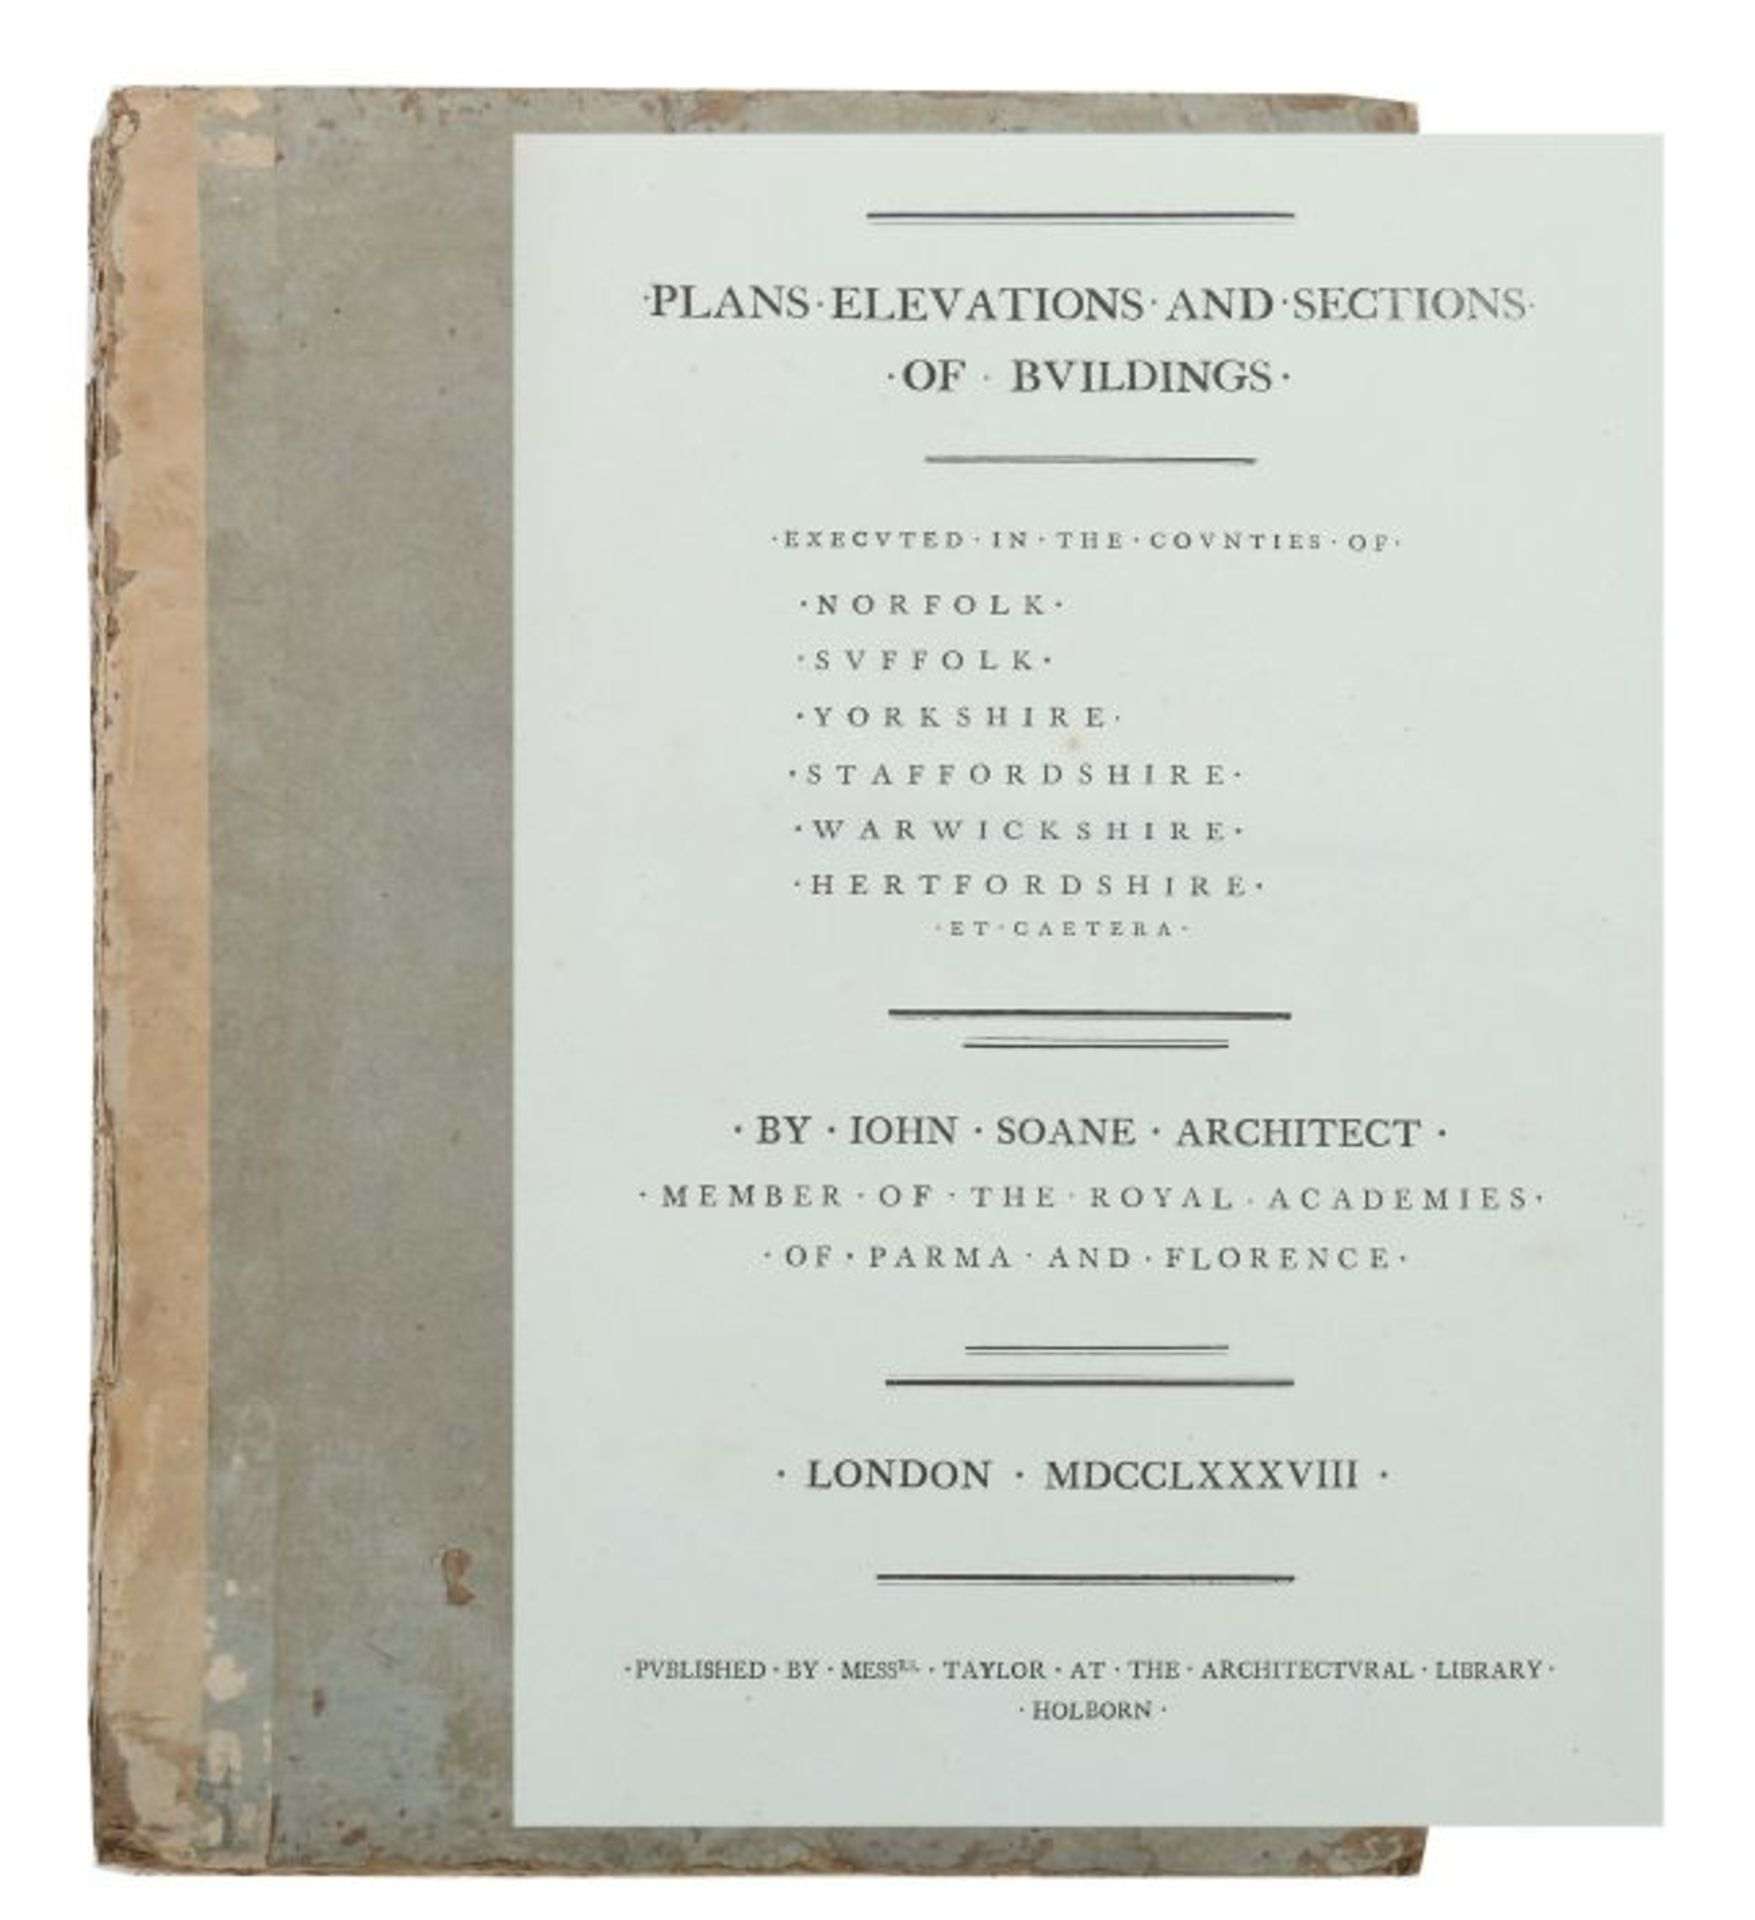 Soane, John Plans, Elevations and Sections of Buildings: executed in the counties of Norfolk,